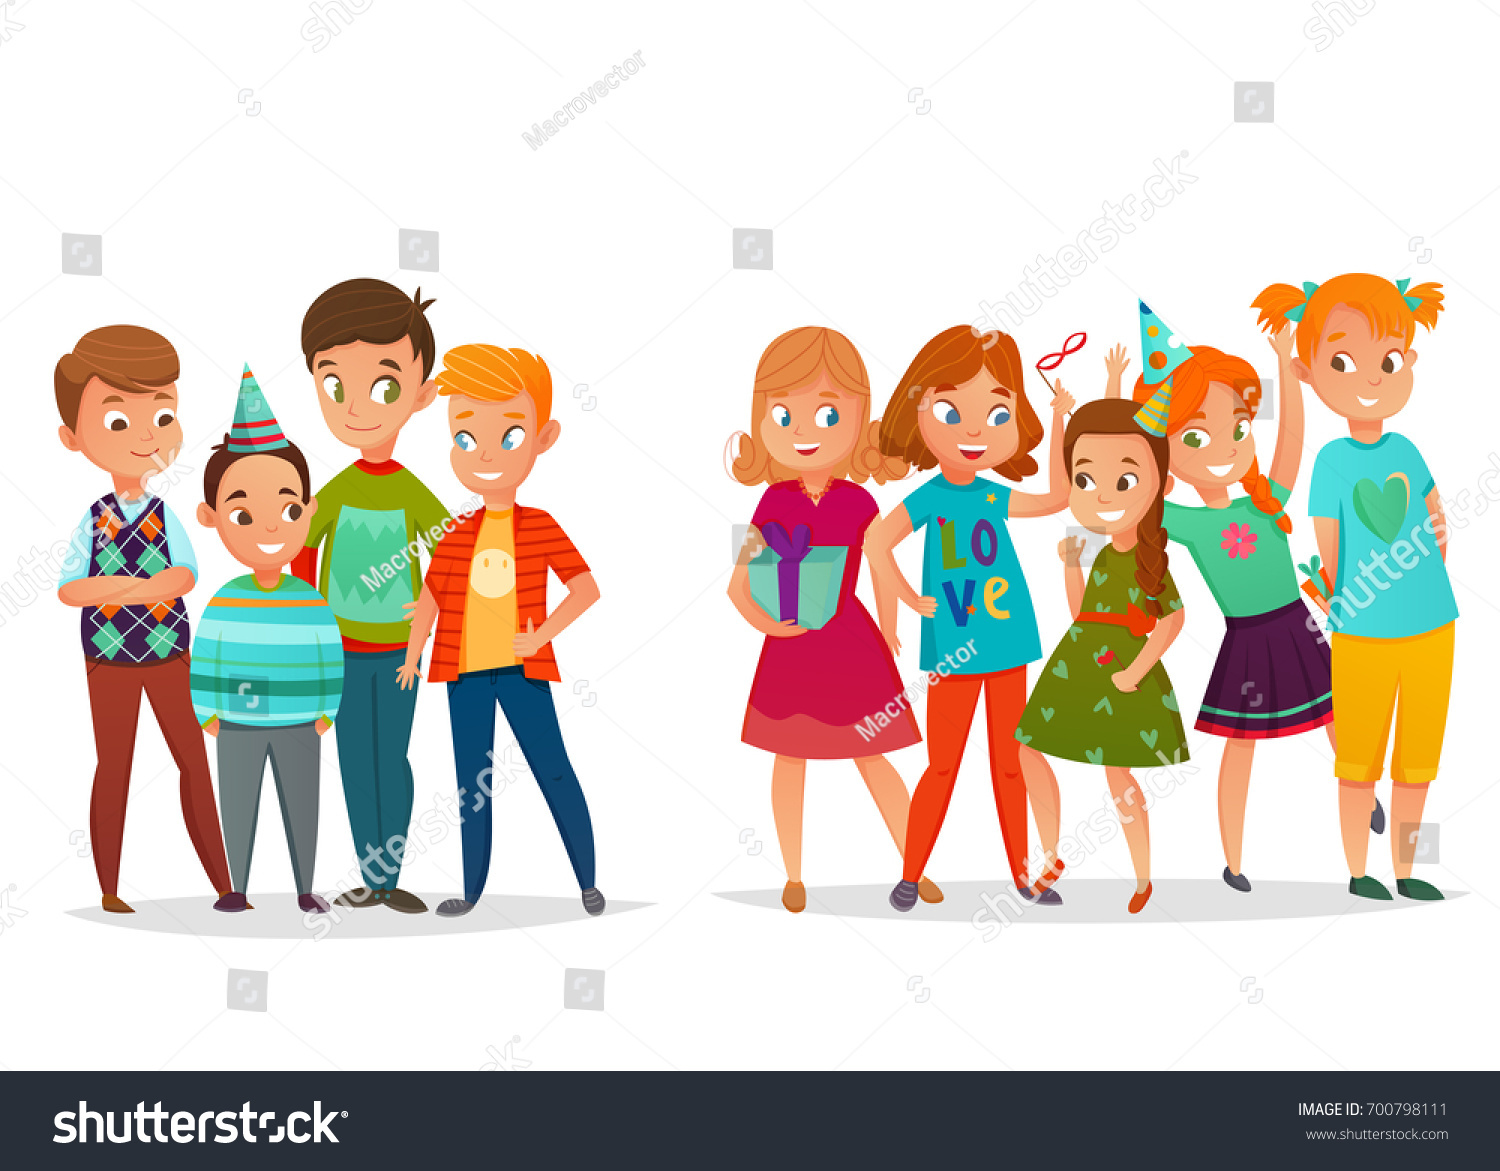 Kids Birthday Party Retro Cartoon Set Of Girls And Boys Groups In Cone Hats Isolated Vector